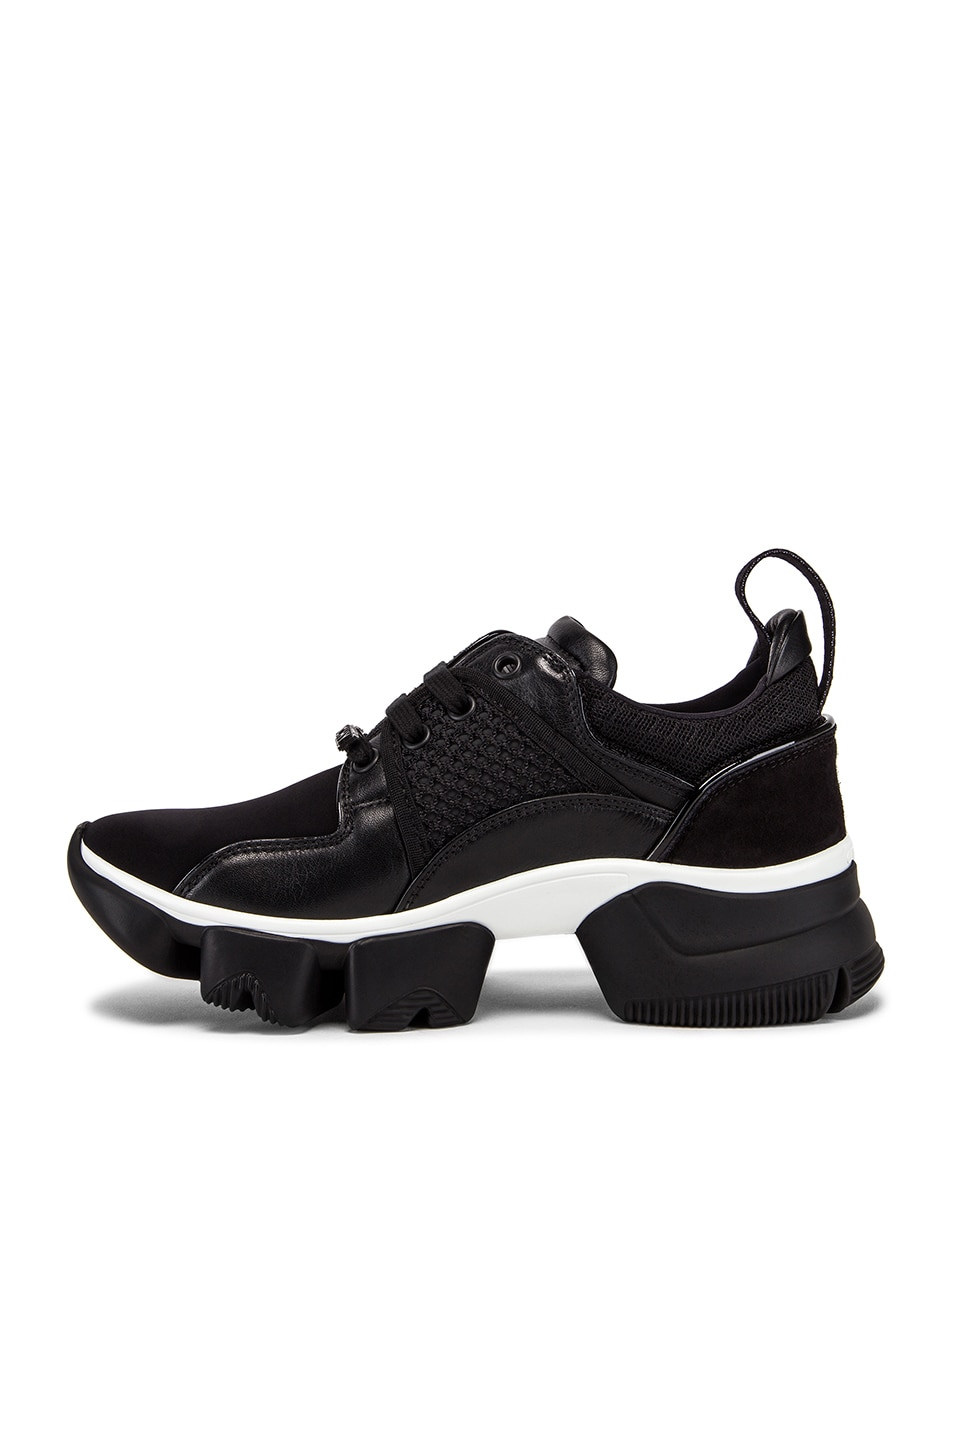 Image 5 of Givenchy Jaw Low Sneakers in Black & White